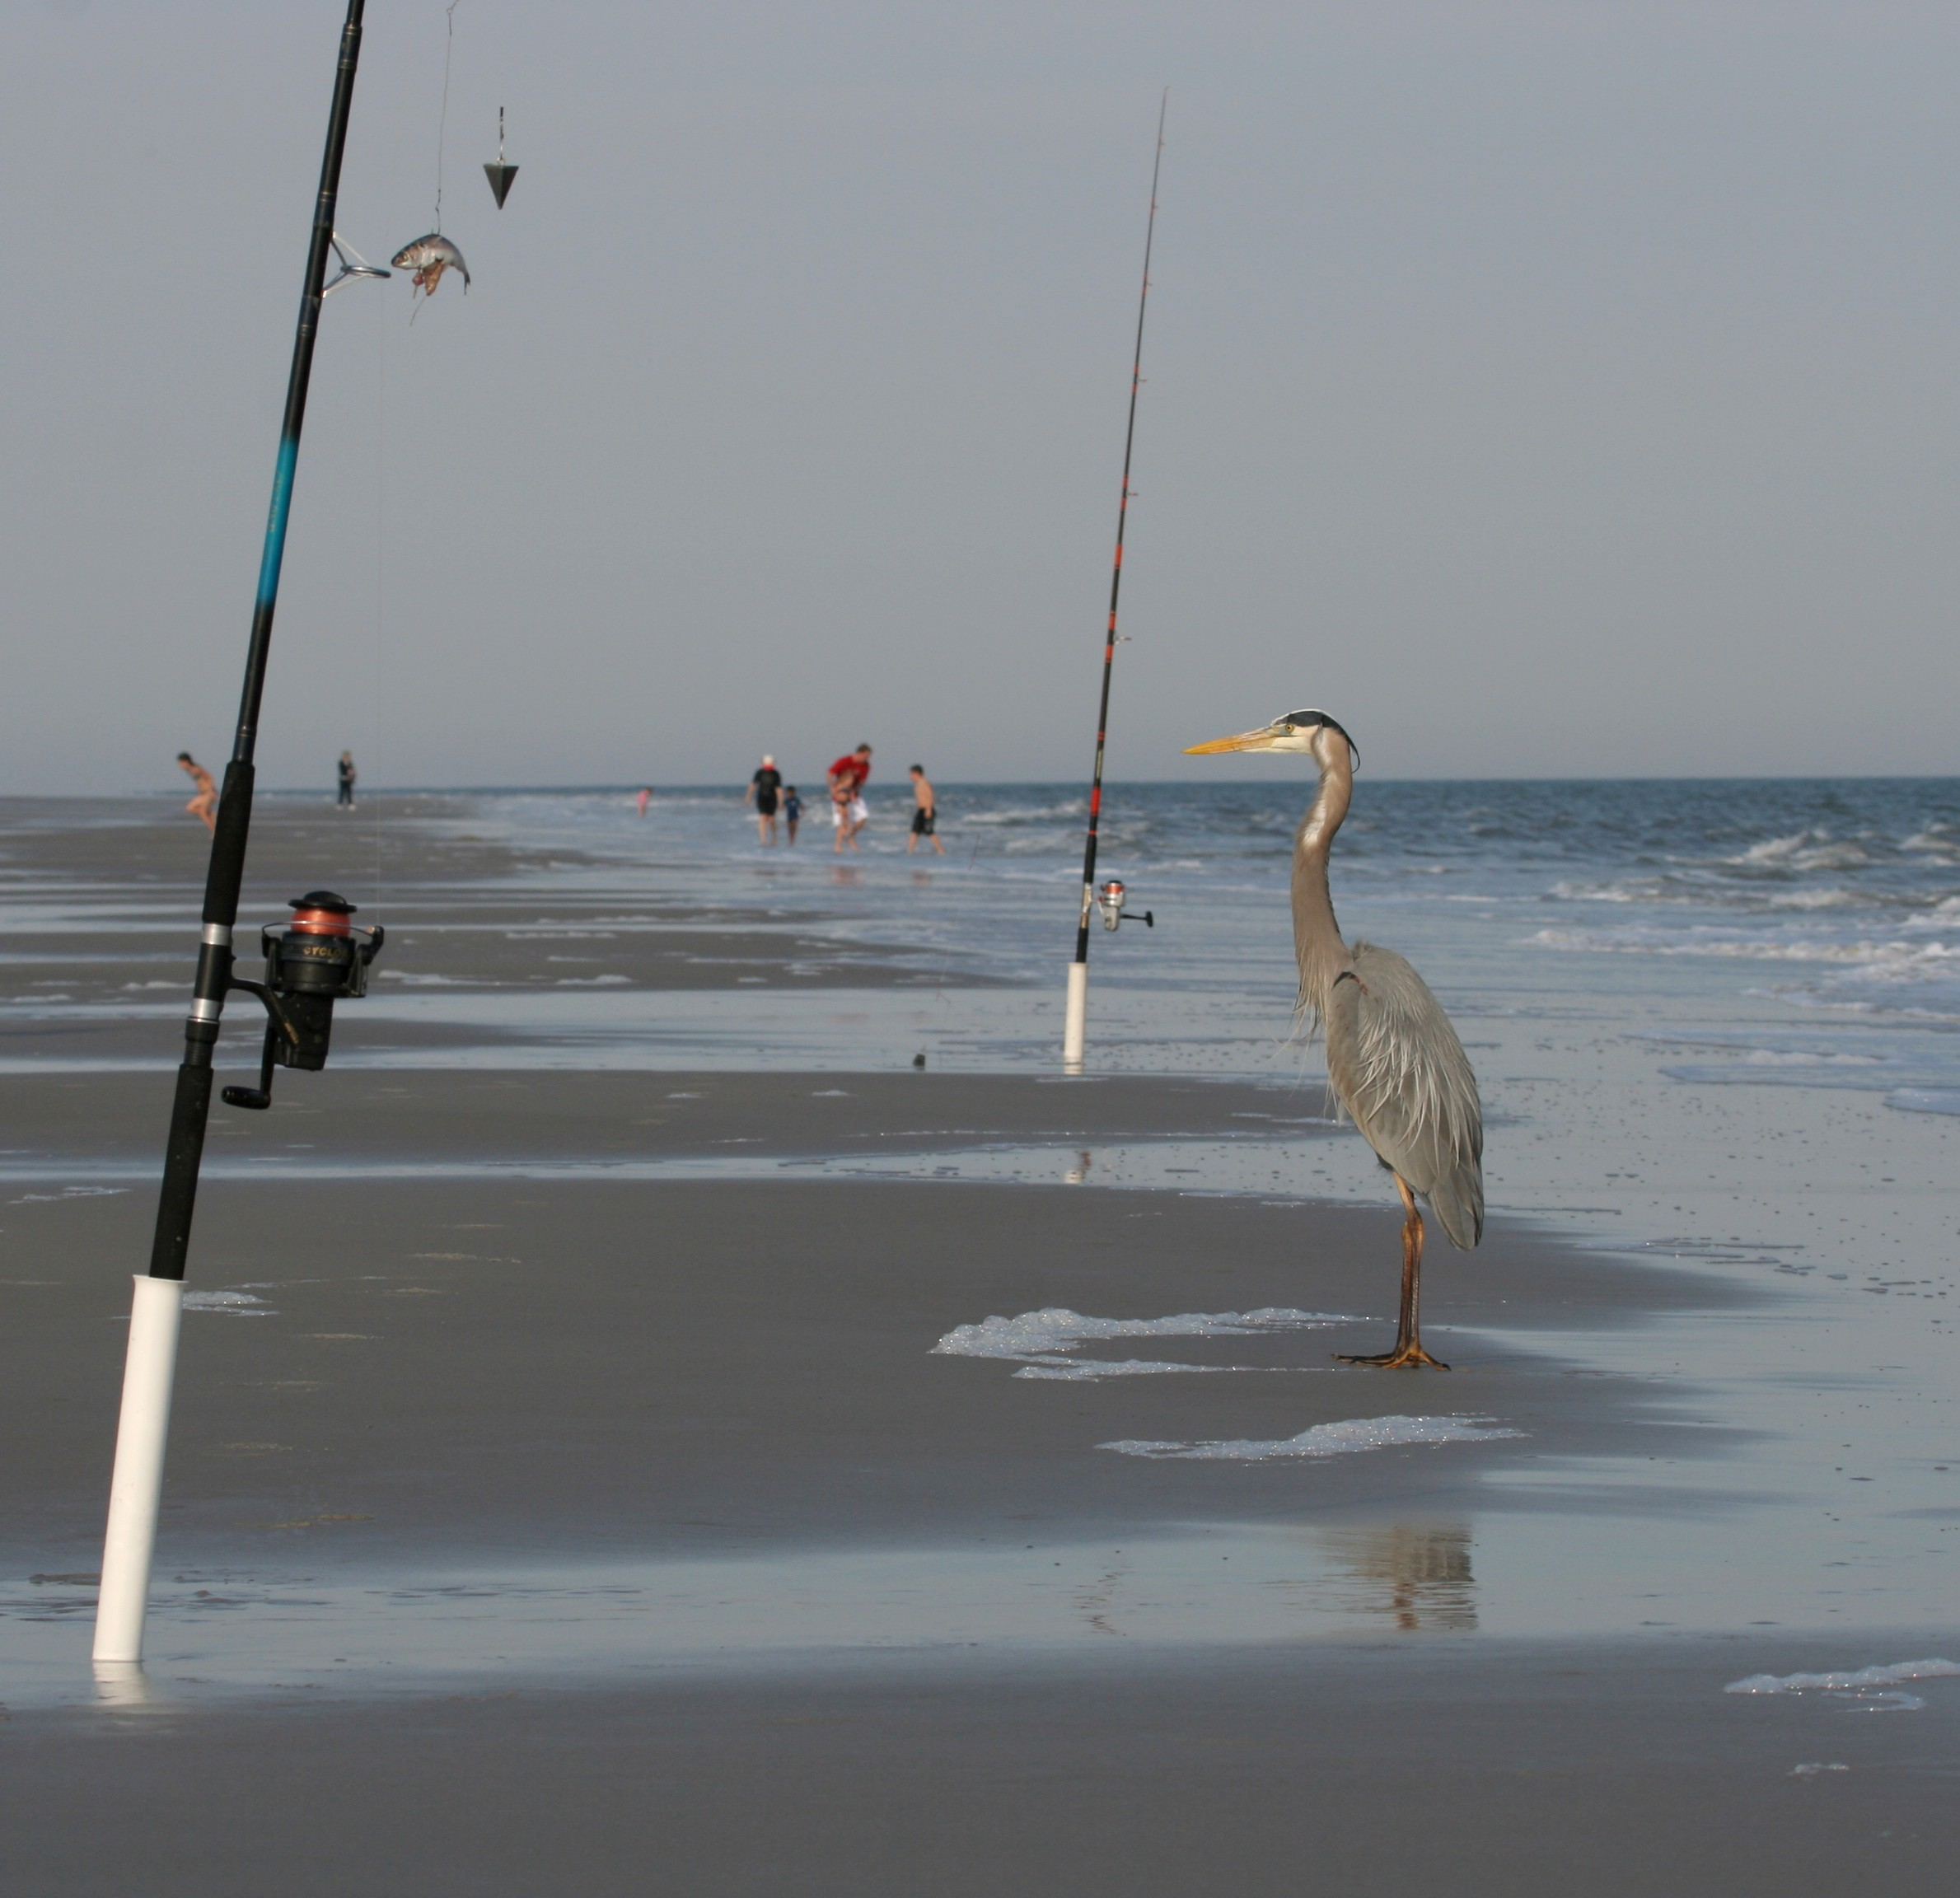 Two fishing poles stand planted in the sand as a seabird looks on.